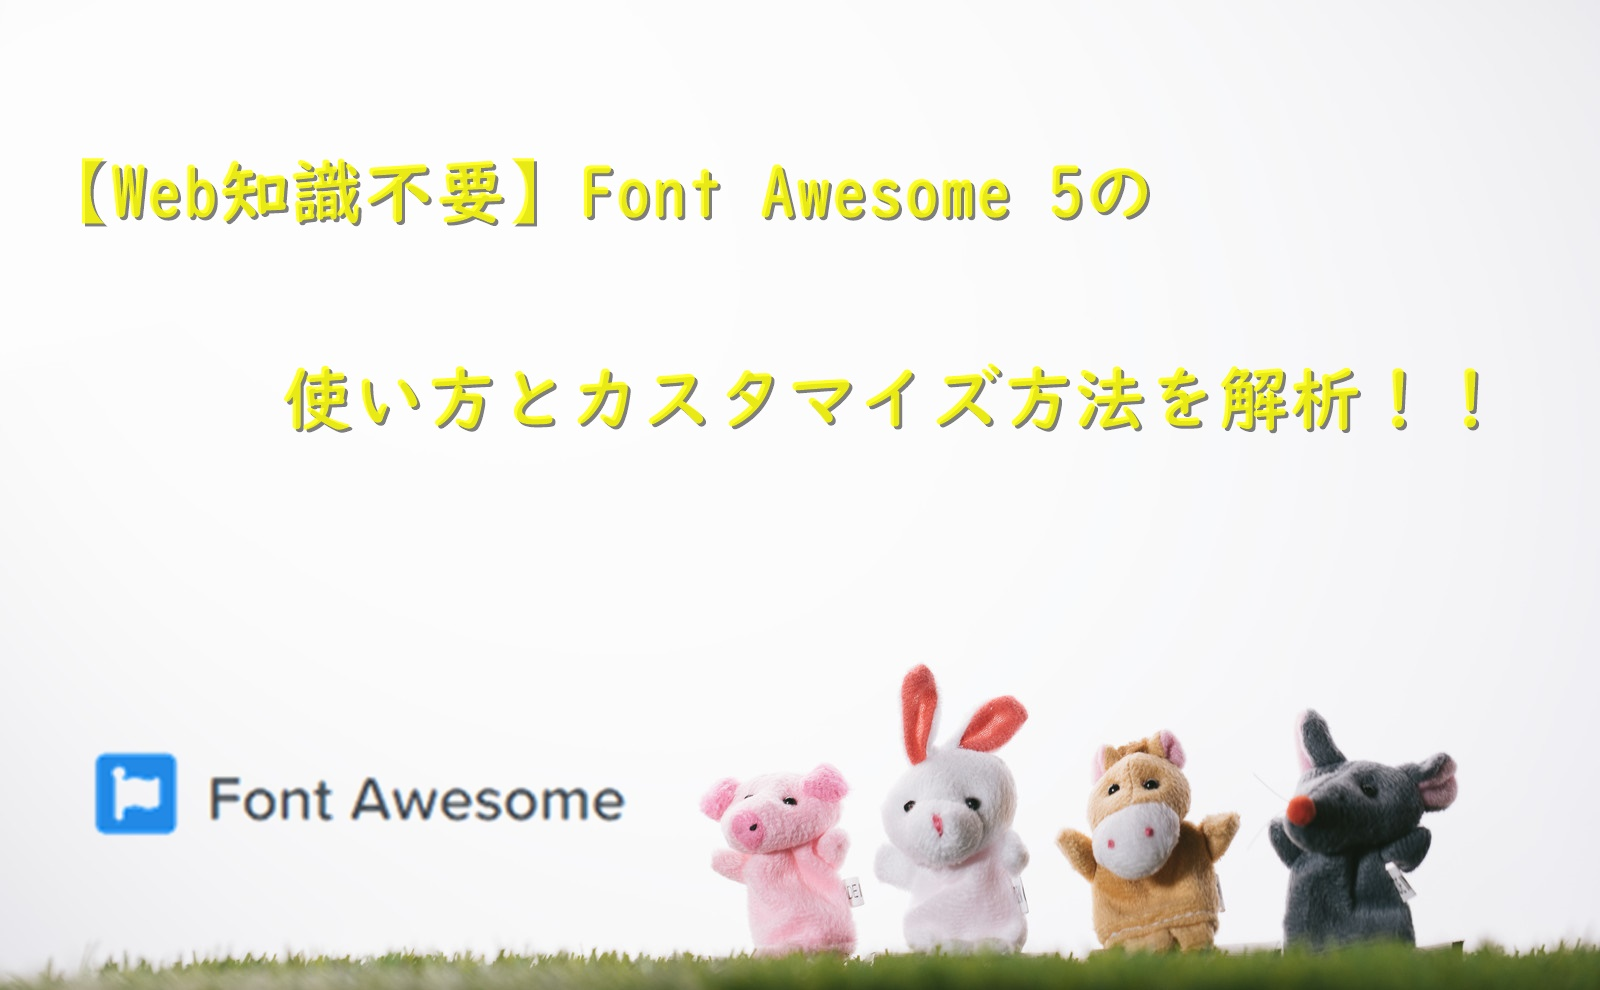 【Web知識不要】Font Awesome 5の使い方とカスタマイズ方法を解析!!のアイキャッチ画像